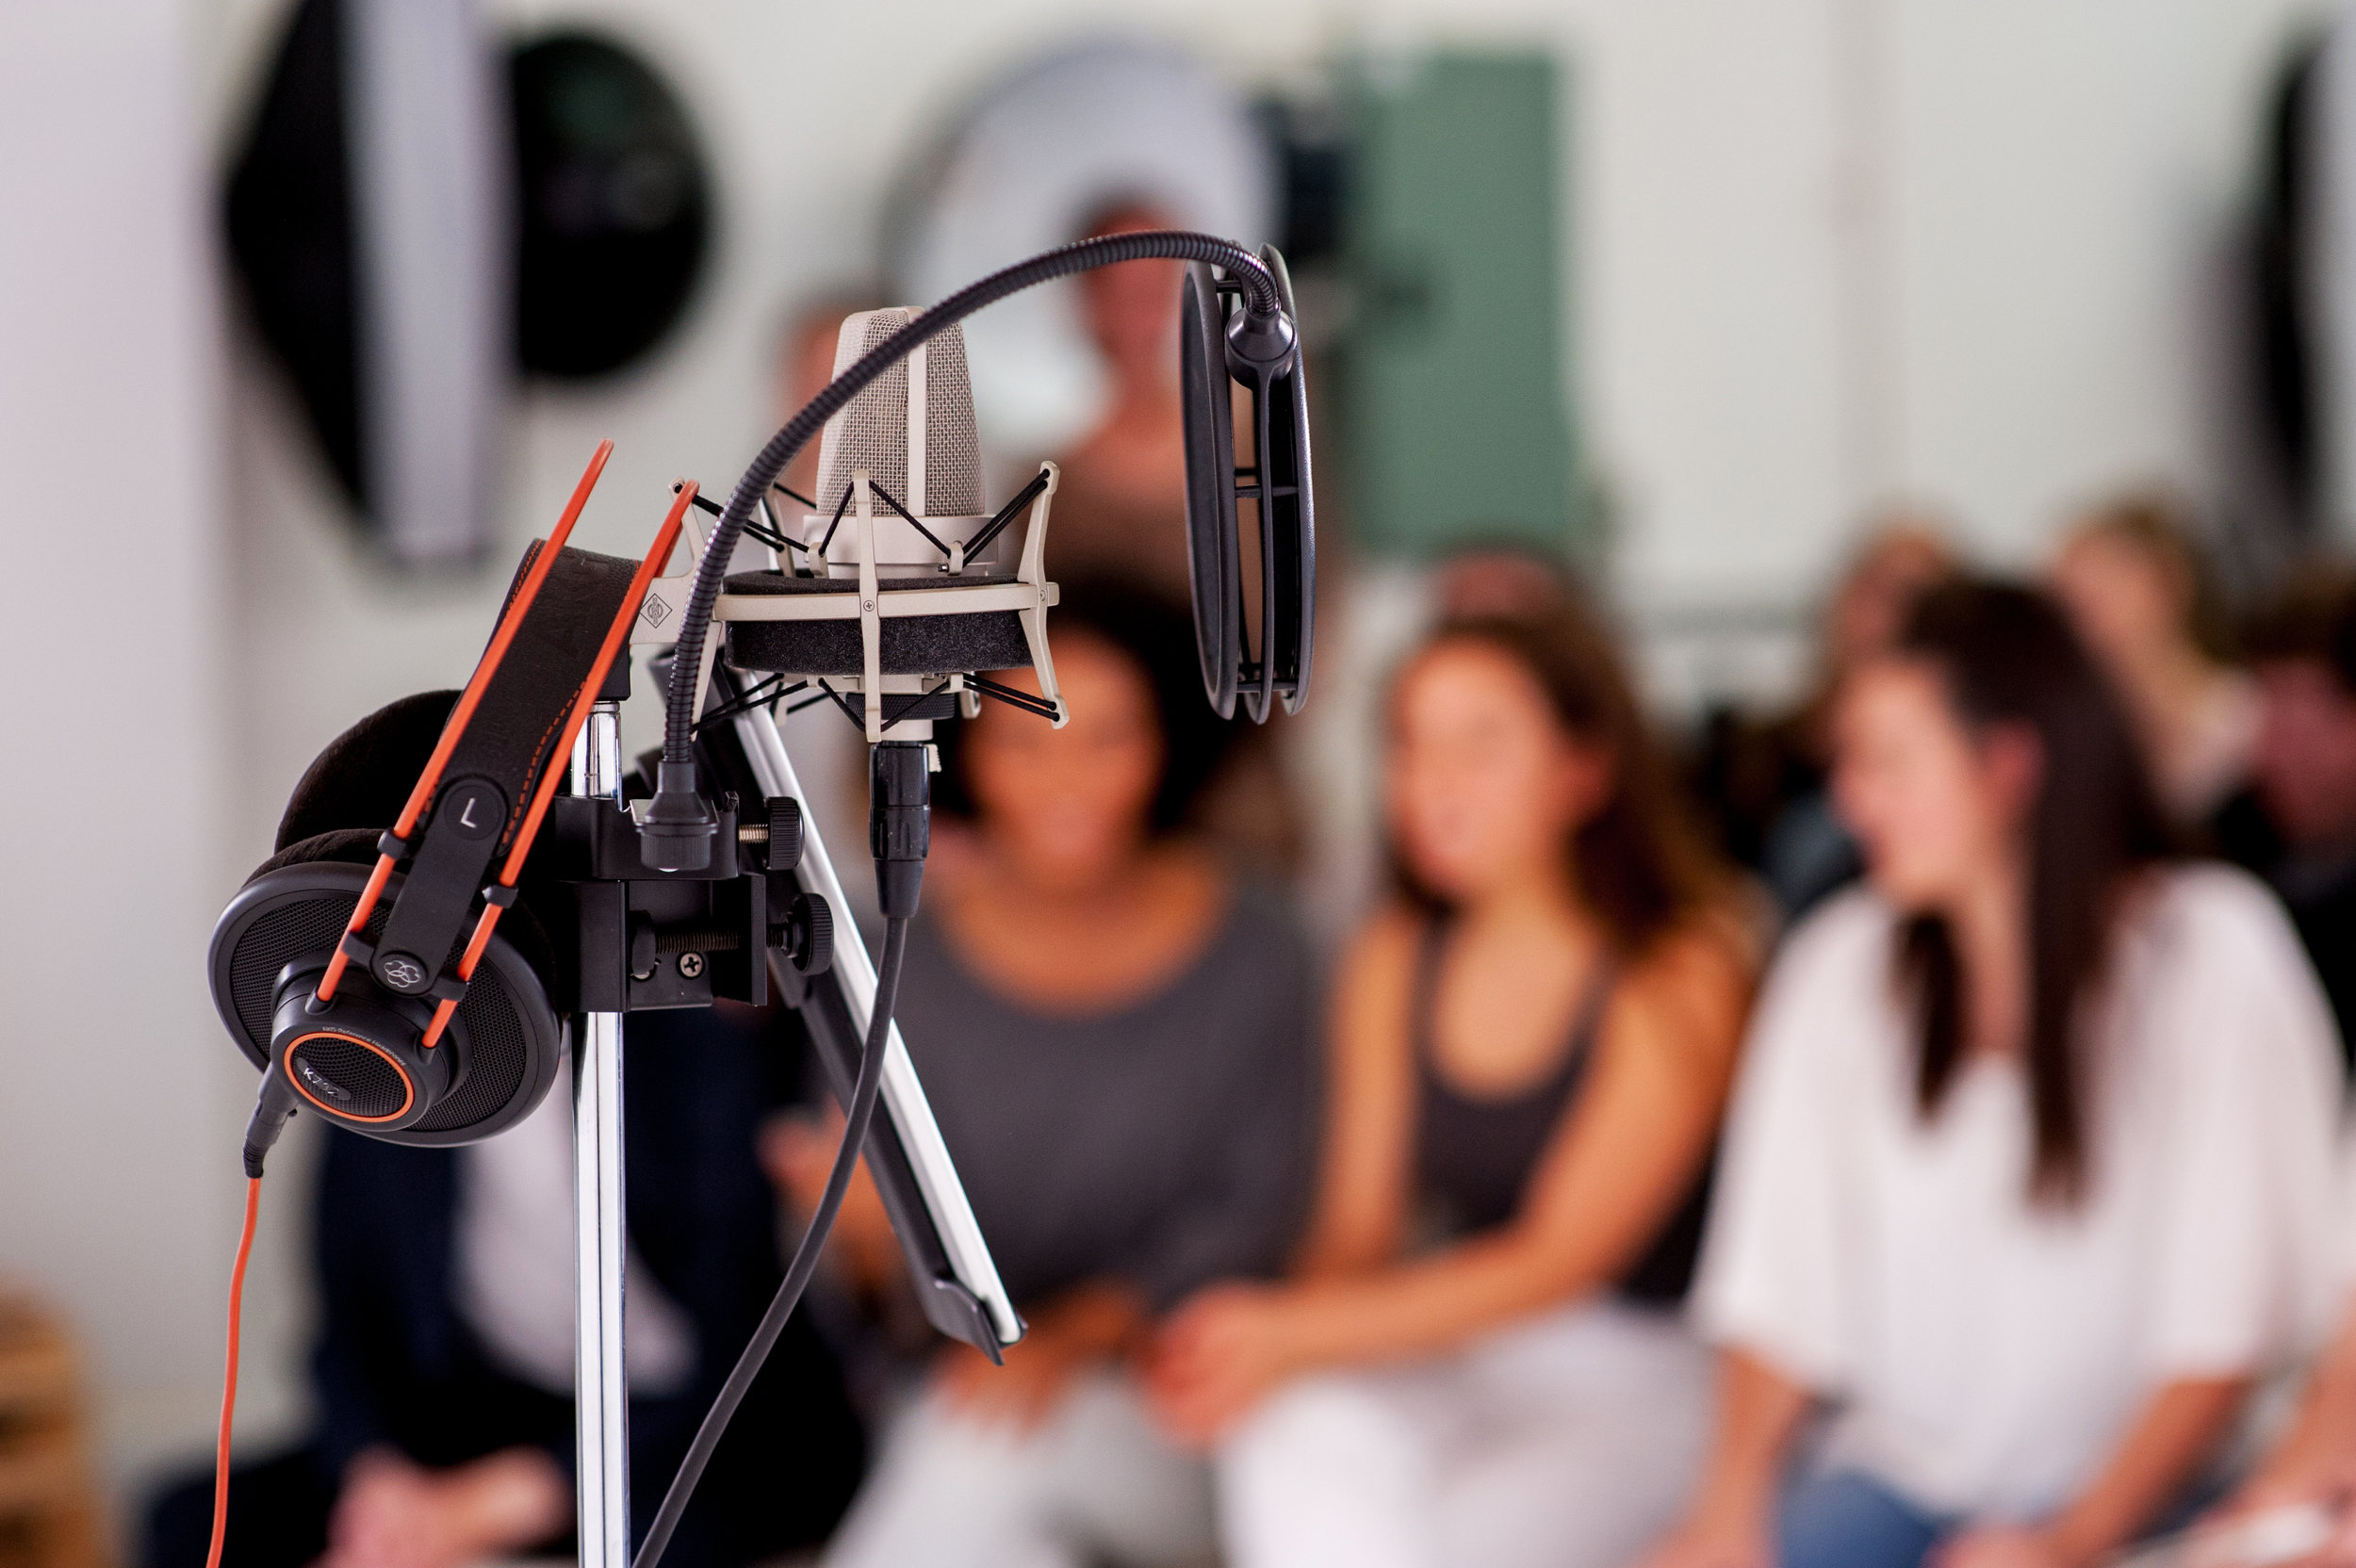 A workshop coming to Perth will show you how to launch a full time business as a professional voice artist.